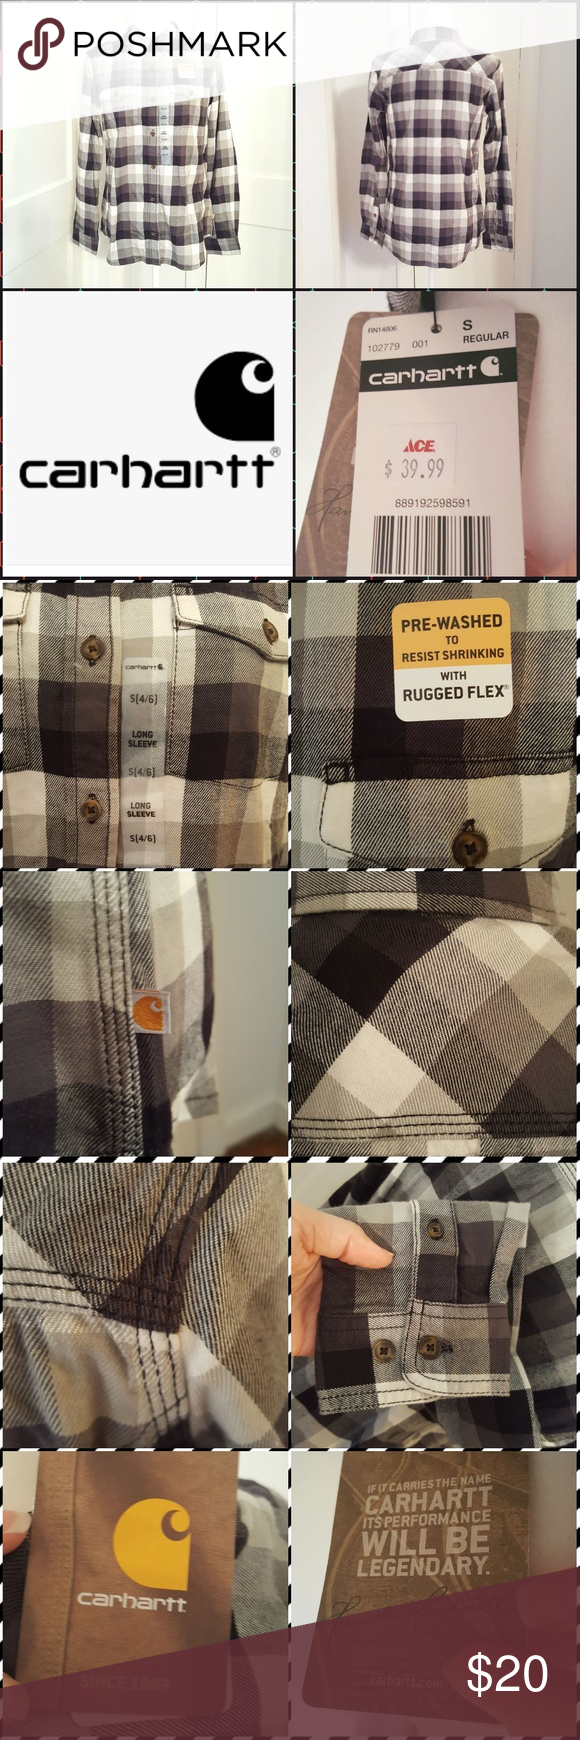 NWT Carhartt Womens-Small long sleeve shirt. NWT Carhartt women's size small (4-6) black and white plaid, triple stitched, button down shirt. Well made shirt. Tops Button Down Shirts #carharttwomen NWT Carhartt Womens-Small long sleeve shirt. NWT Carhartt women's size small (4-6) black and white plaid, triple stitched, button down shirt. Well made shirt. Tops Button Down Shirts #carharttwomen